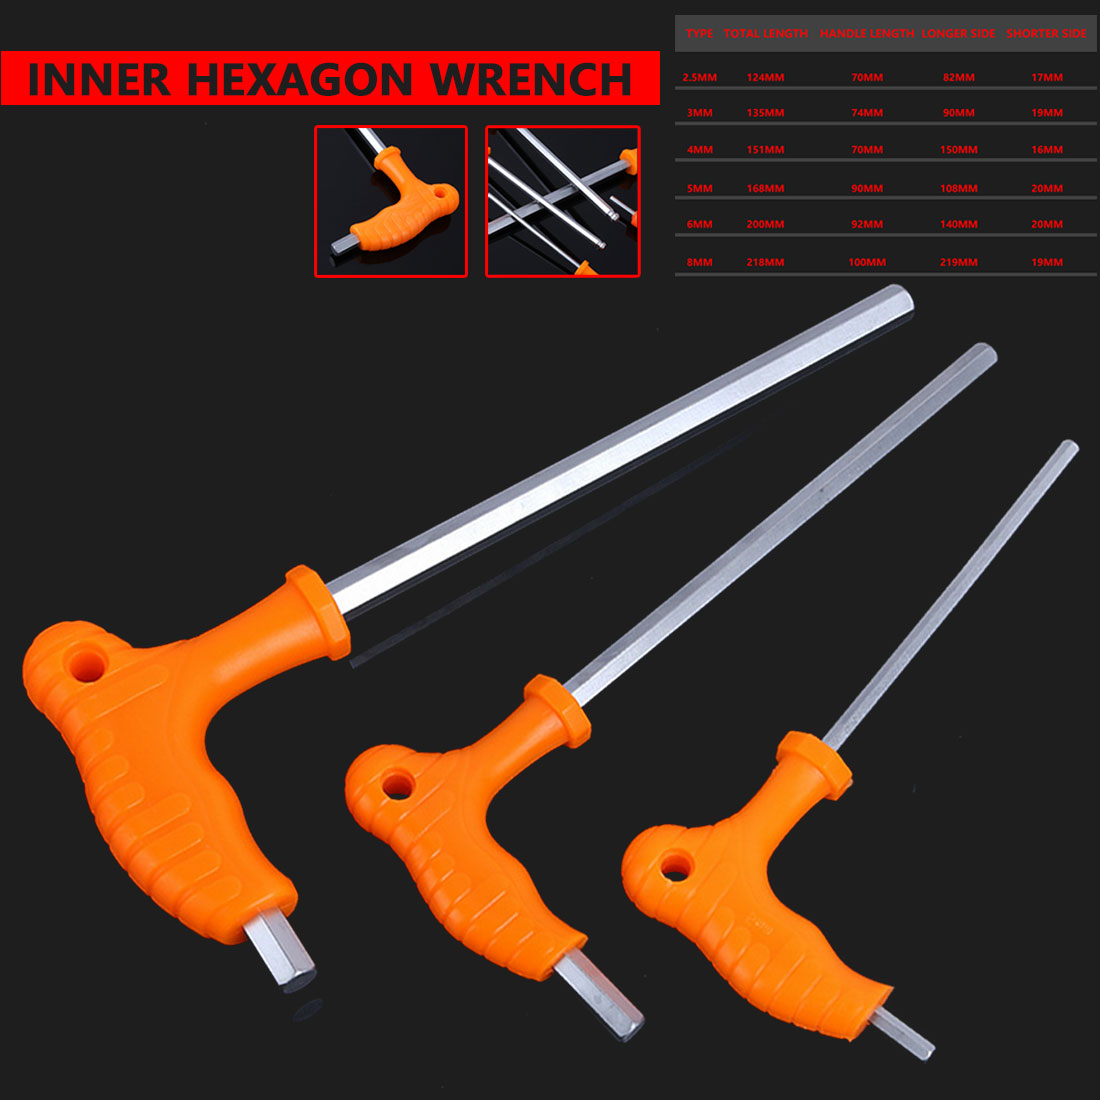 Hand Tool 2.5/3/4/5/6/8mm High-carbon Steel Inner Hexagon Wrench T Handle Allen Hex Key Wrench Spanner